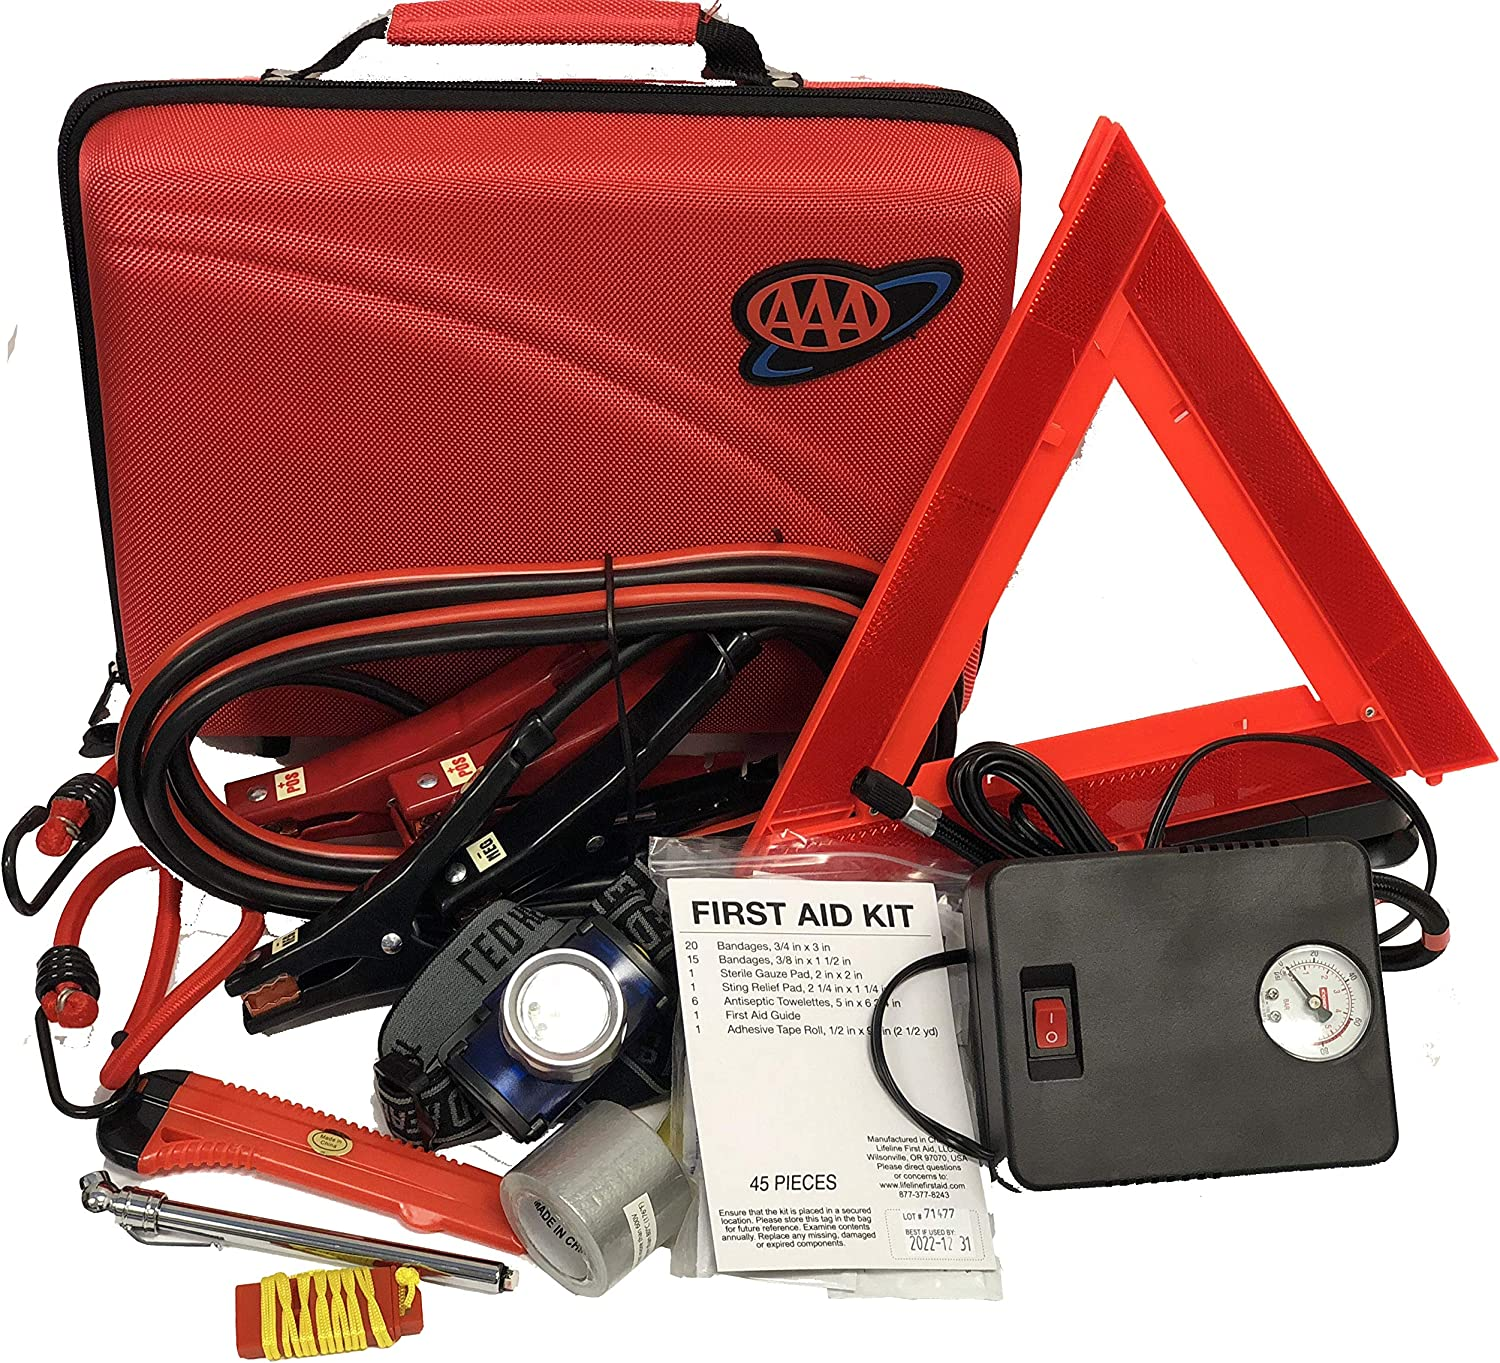 Lifeline 4365AAA 68Pc AAA Destination Road, 68 Piece Emergency Car Tire Inflator, Jumper Cables, Headlamp, Warning Triangle and First Aid Kit